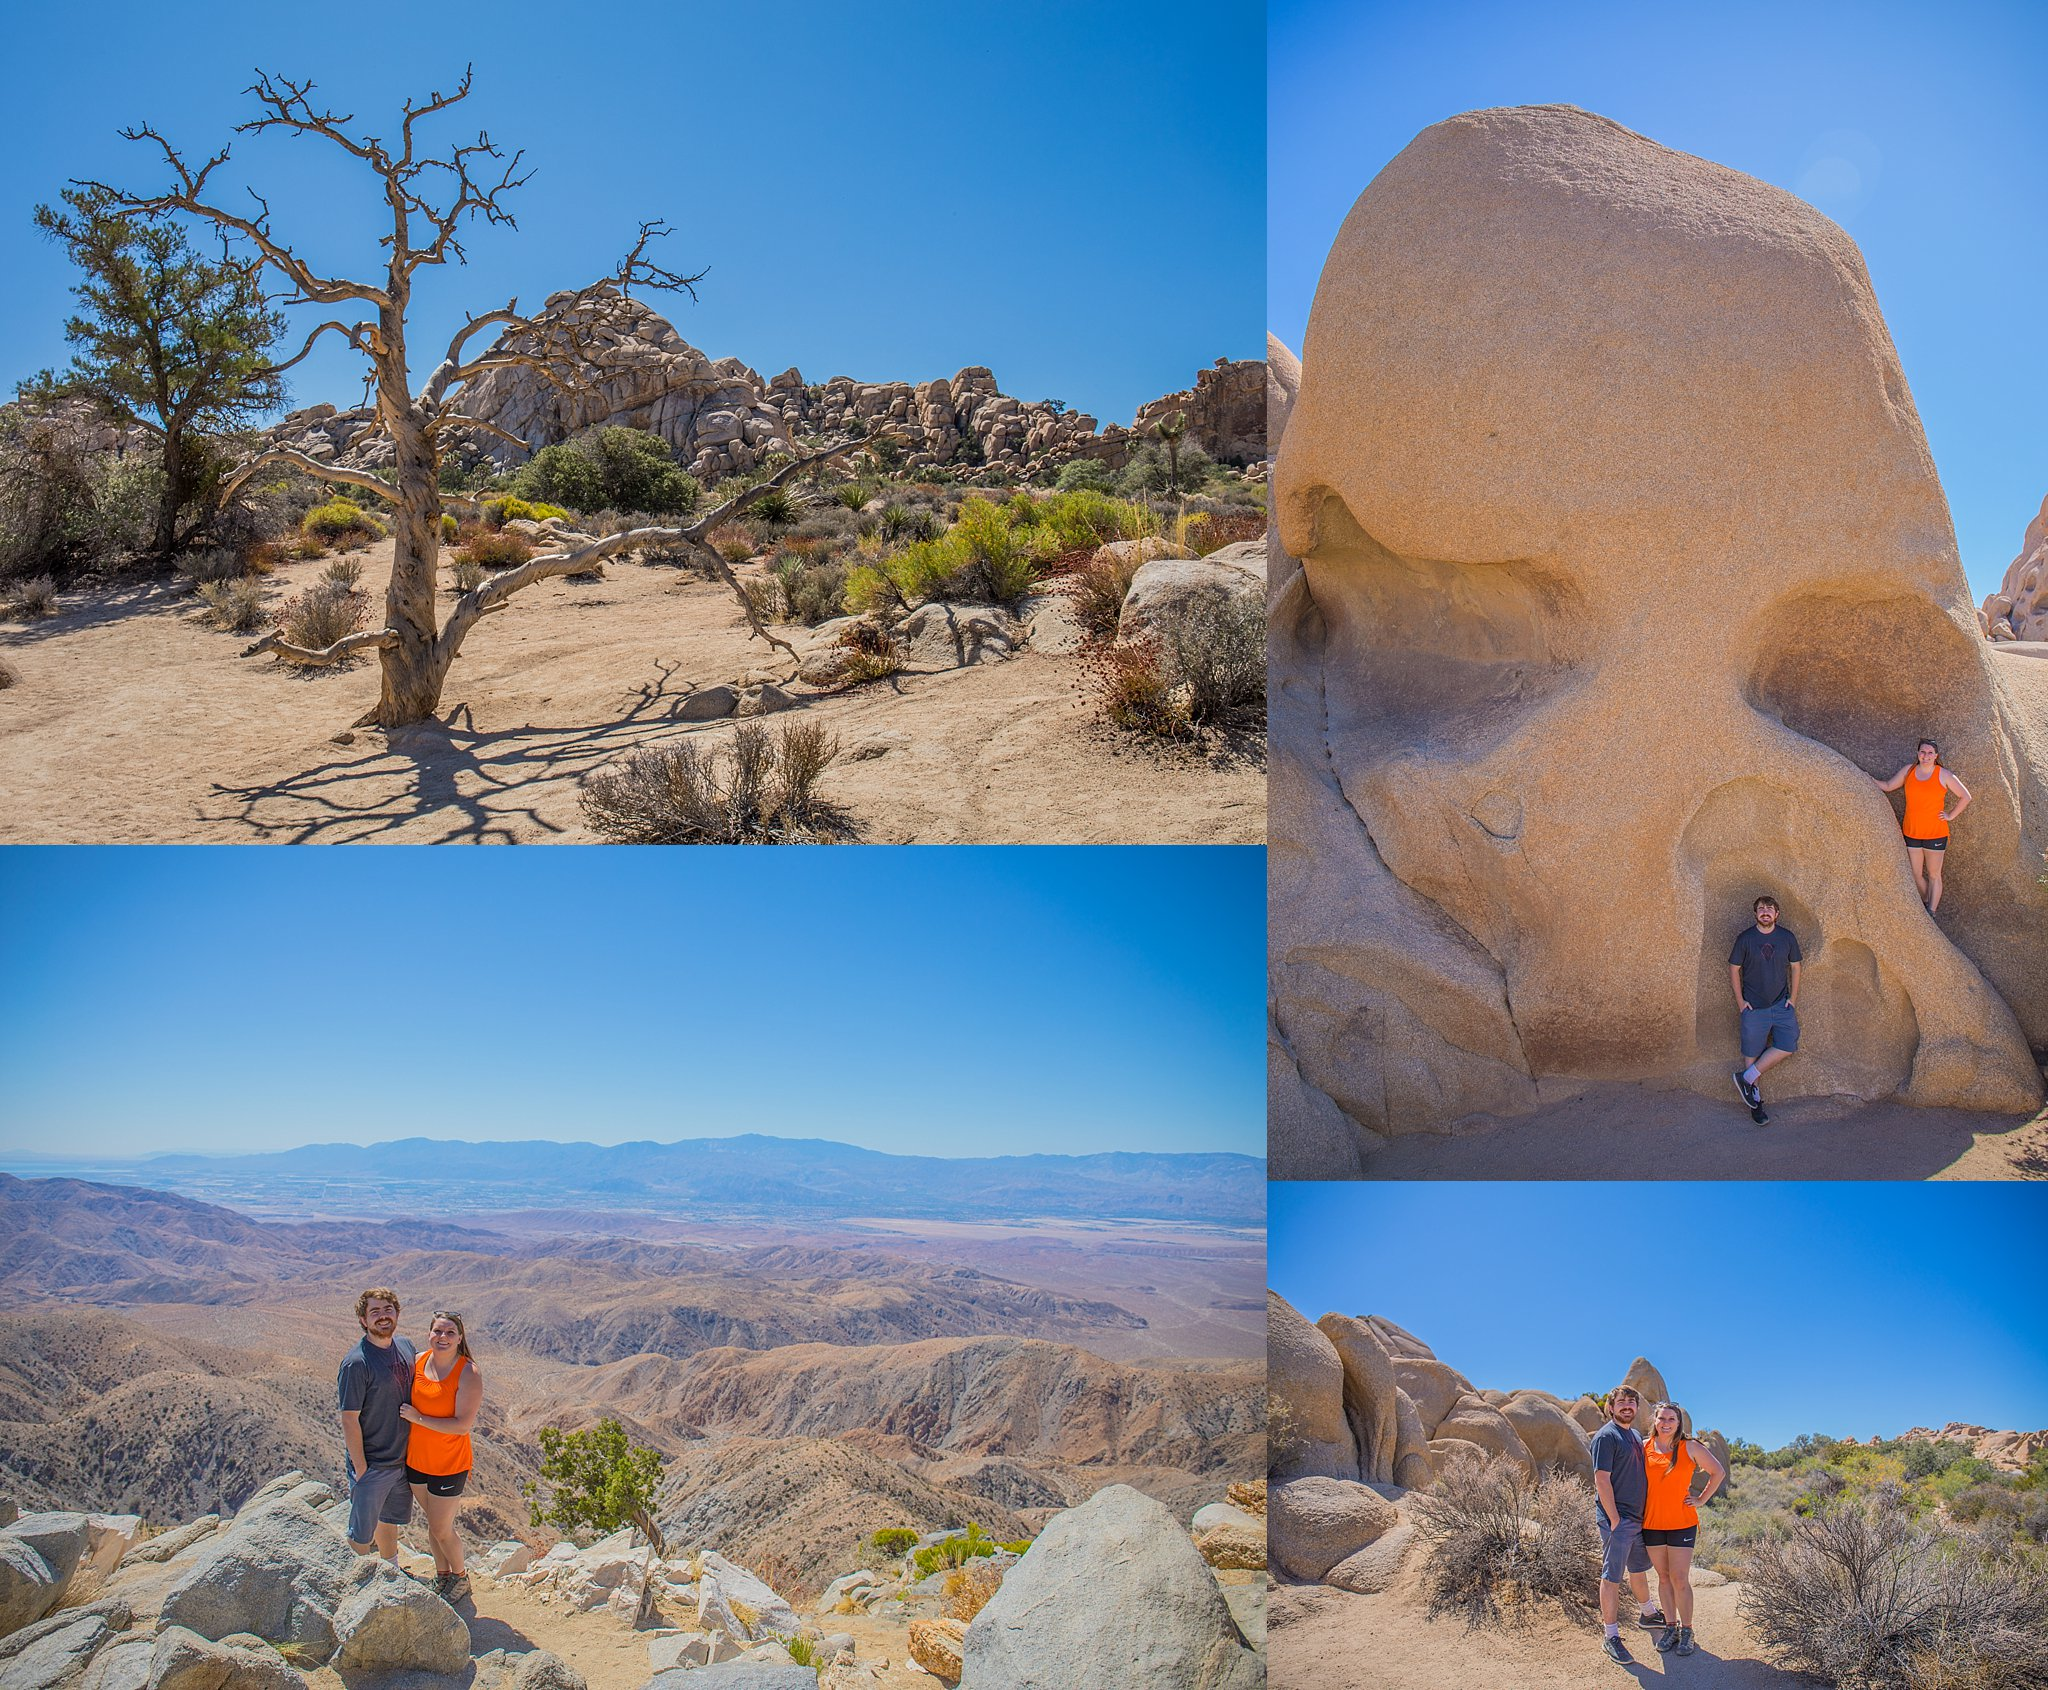 Weekend Trip to Joshua Tree National Park and Palm Springs